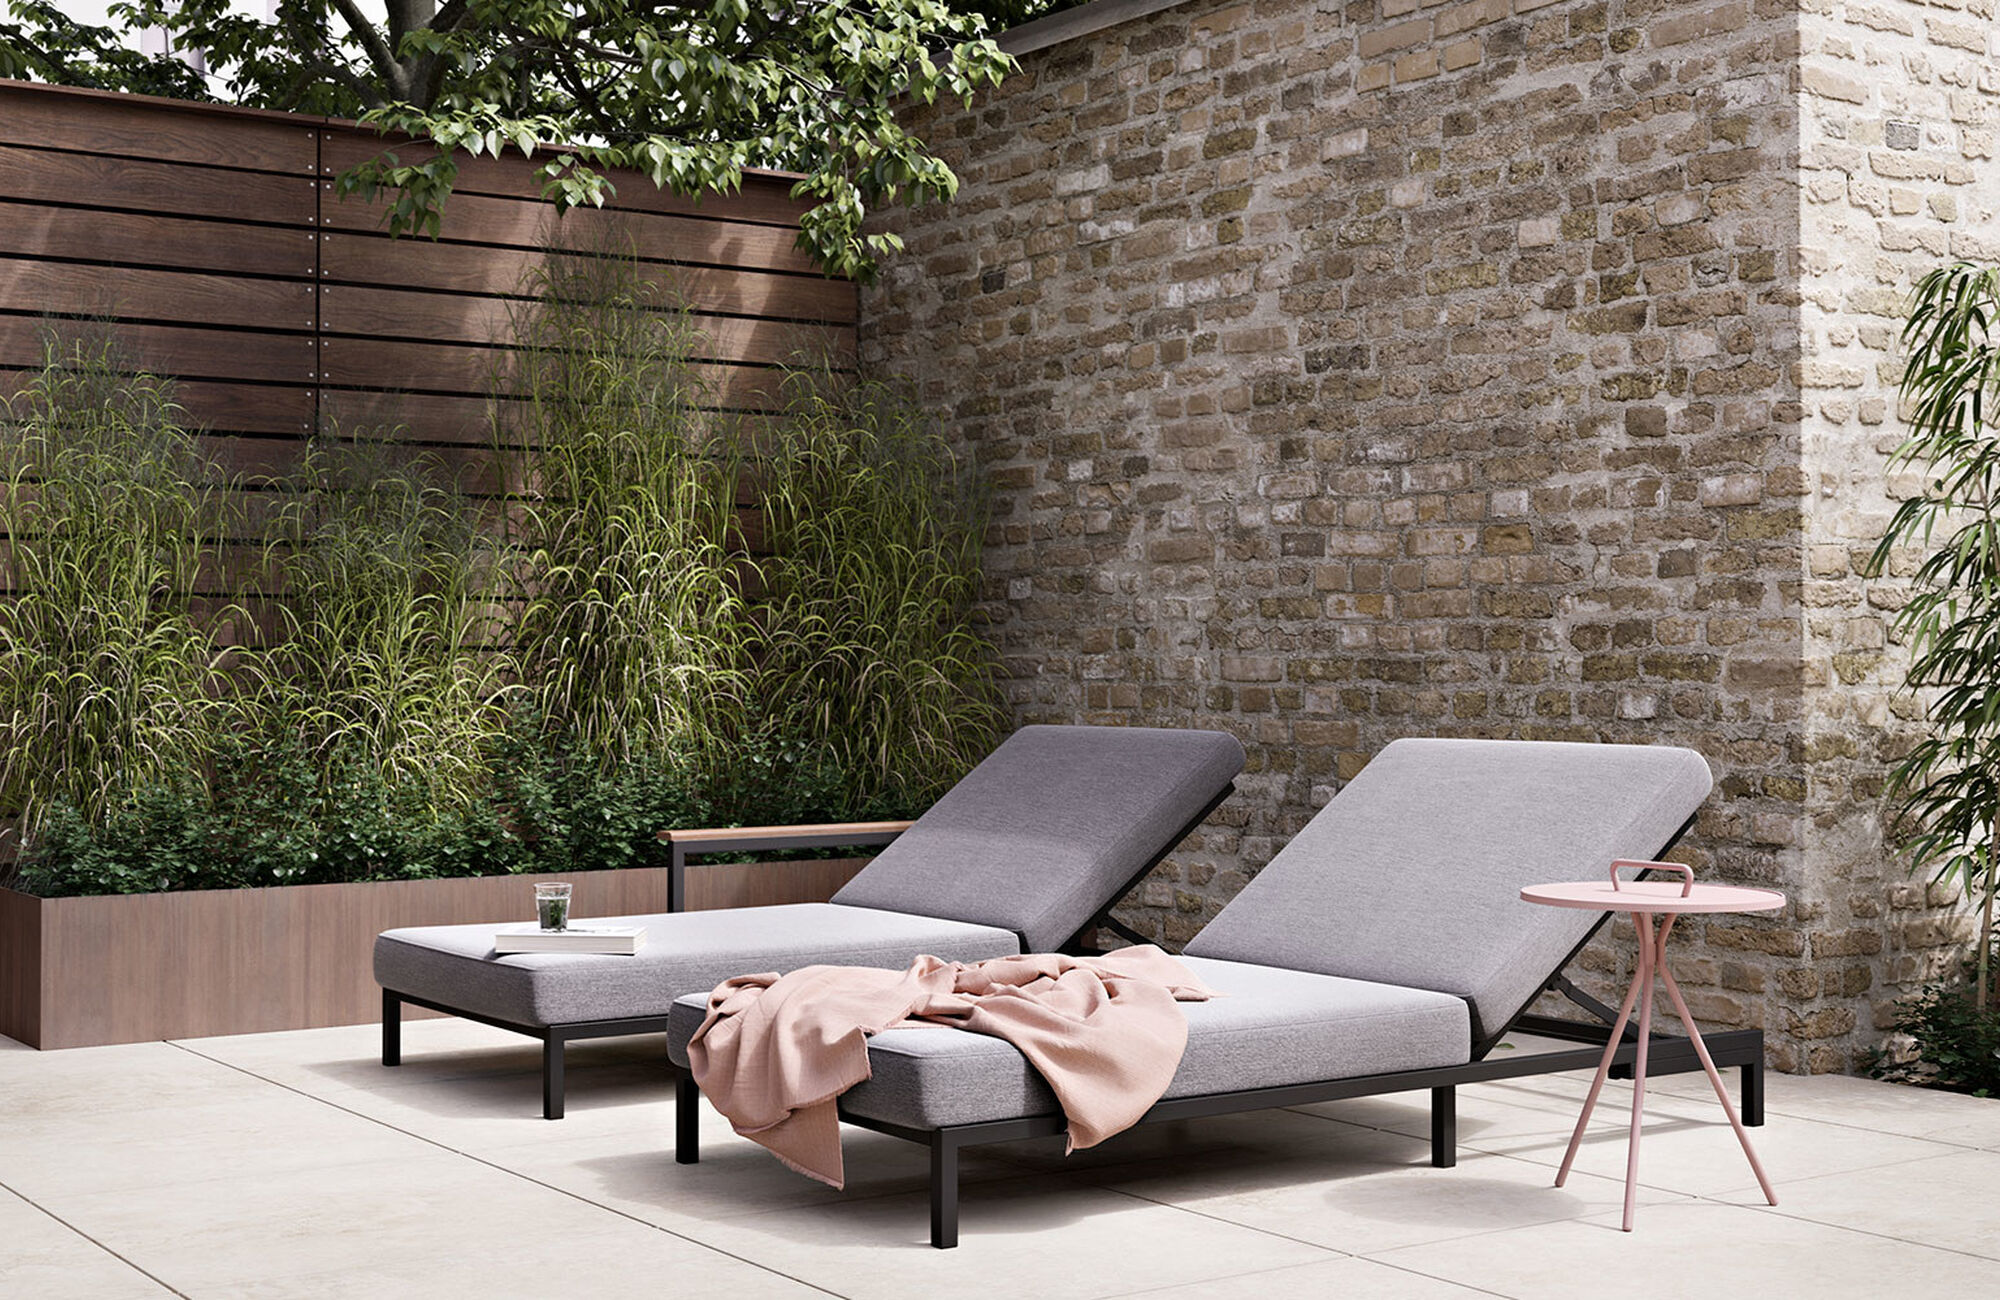 Designs by Henrik Pedersen - Rome sun lounger without armrest